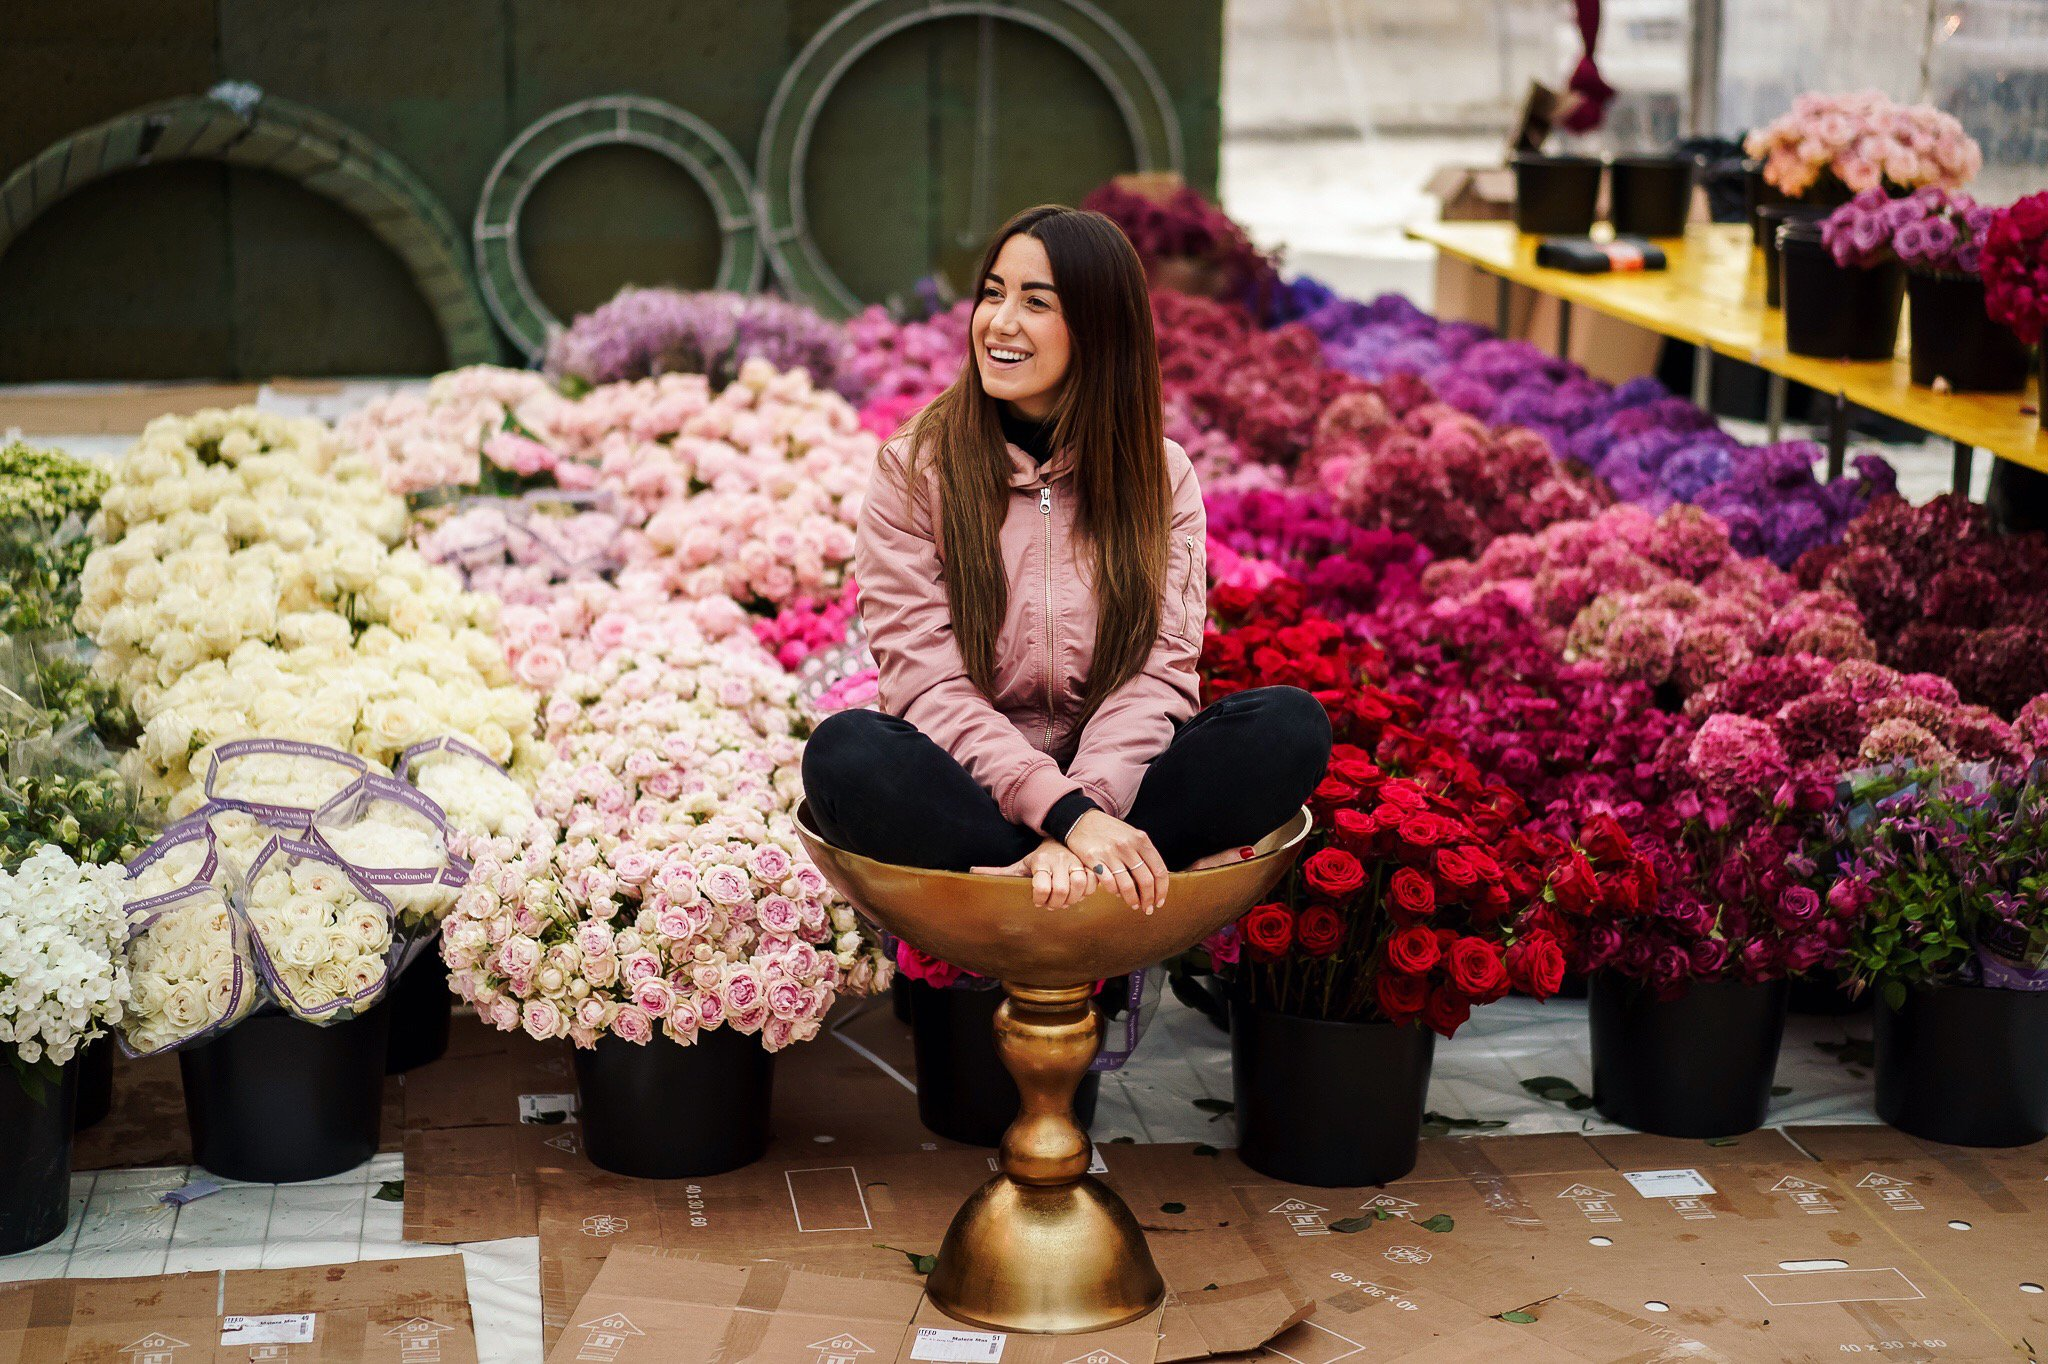 Our amazing flower supplier